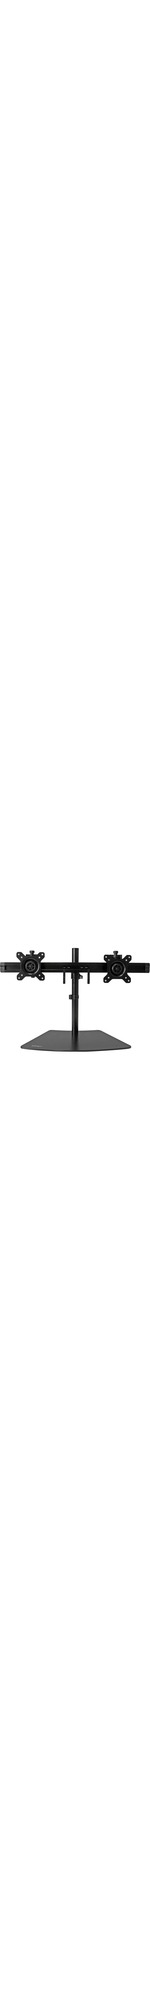 StarTech.com Dual Monitor Stand - Monitor Mount for Two Displays - Up to 61 cm 24And#34; Screen Support - 8.16 kg Load Capacity - Plastic, Steel - Black